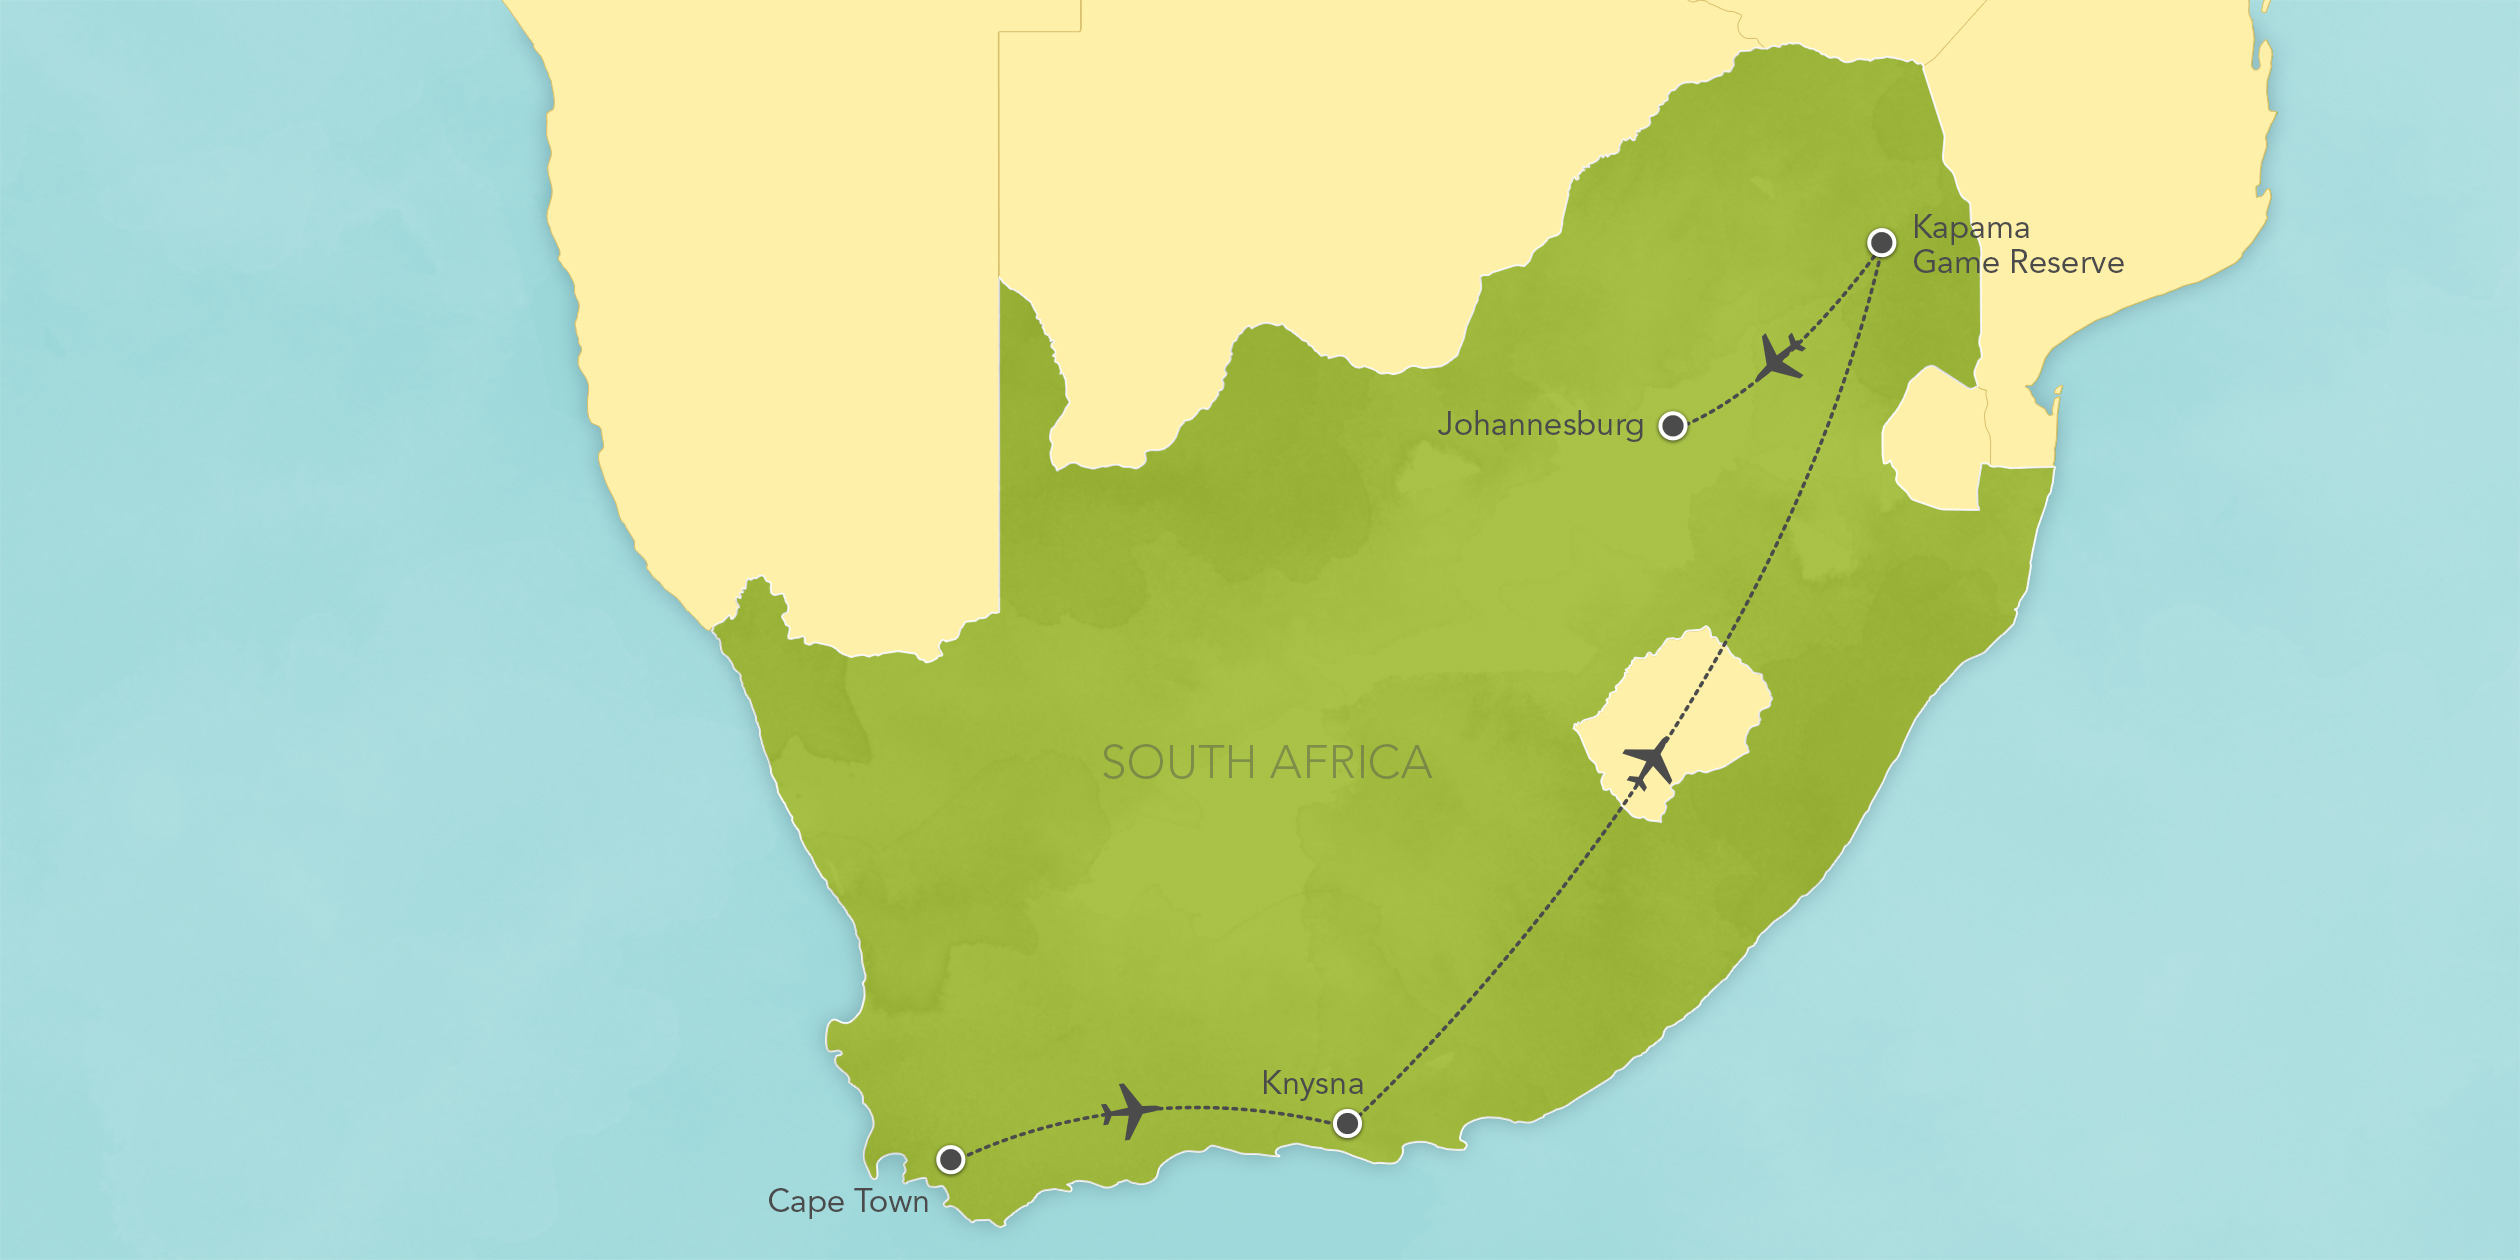 Itinerary map of South Africa Safari: Cape Town, Knysna, Kapama Game Reserve 2017